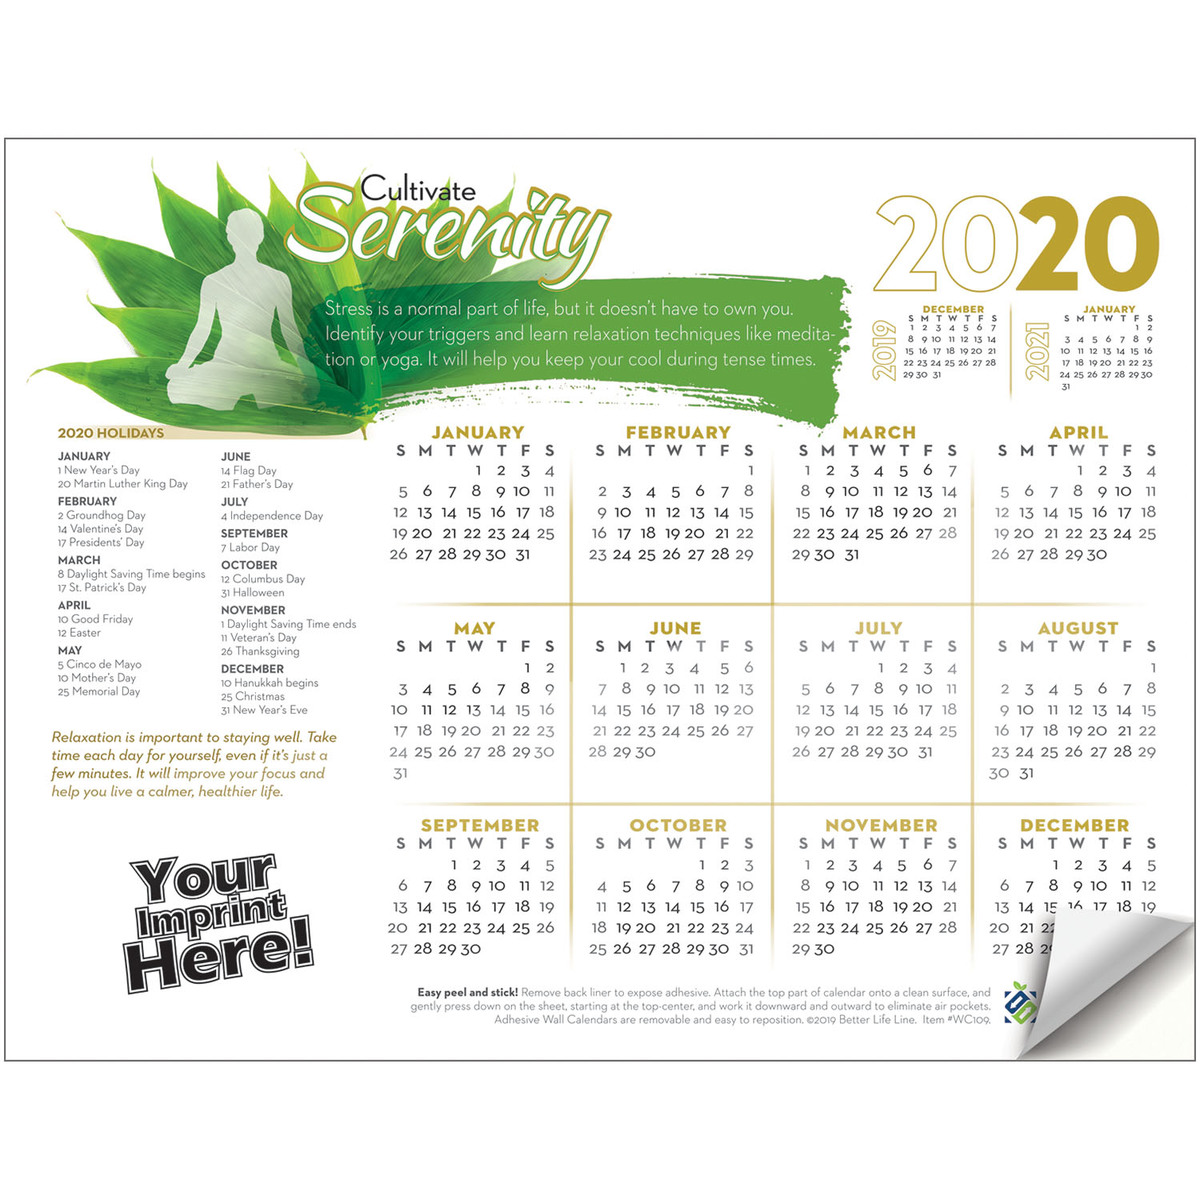 Awareness Calendar 2020 Adhesive Wall Calendar   2020 Cultivate Serenity (Stress Awareness